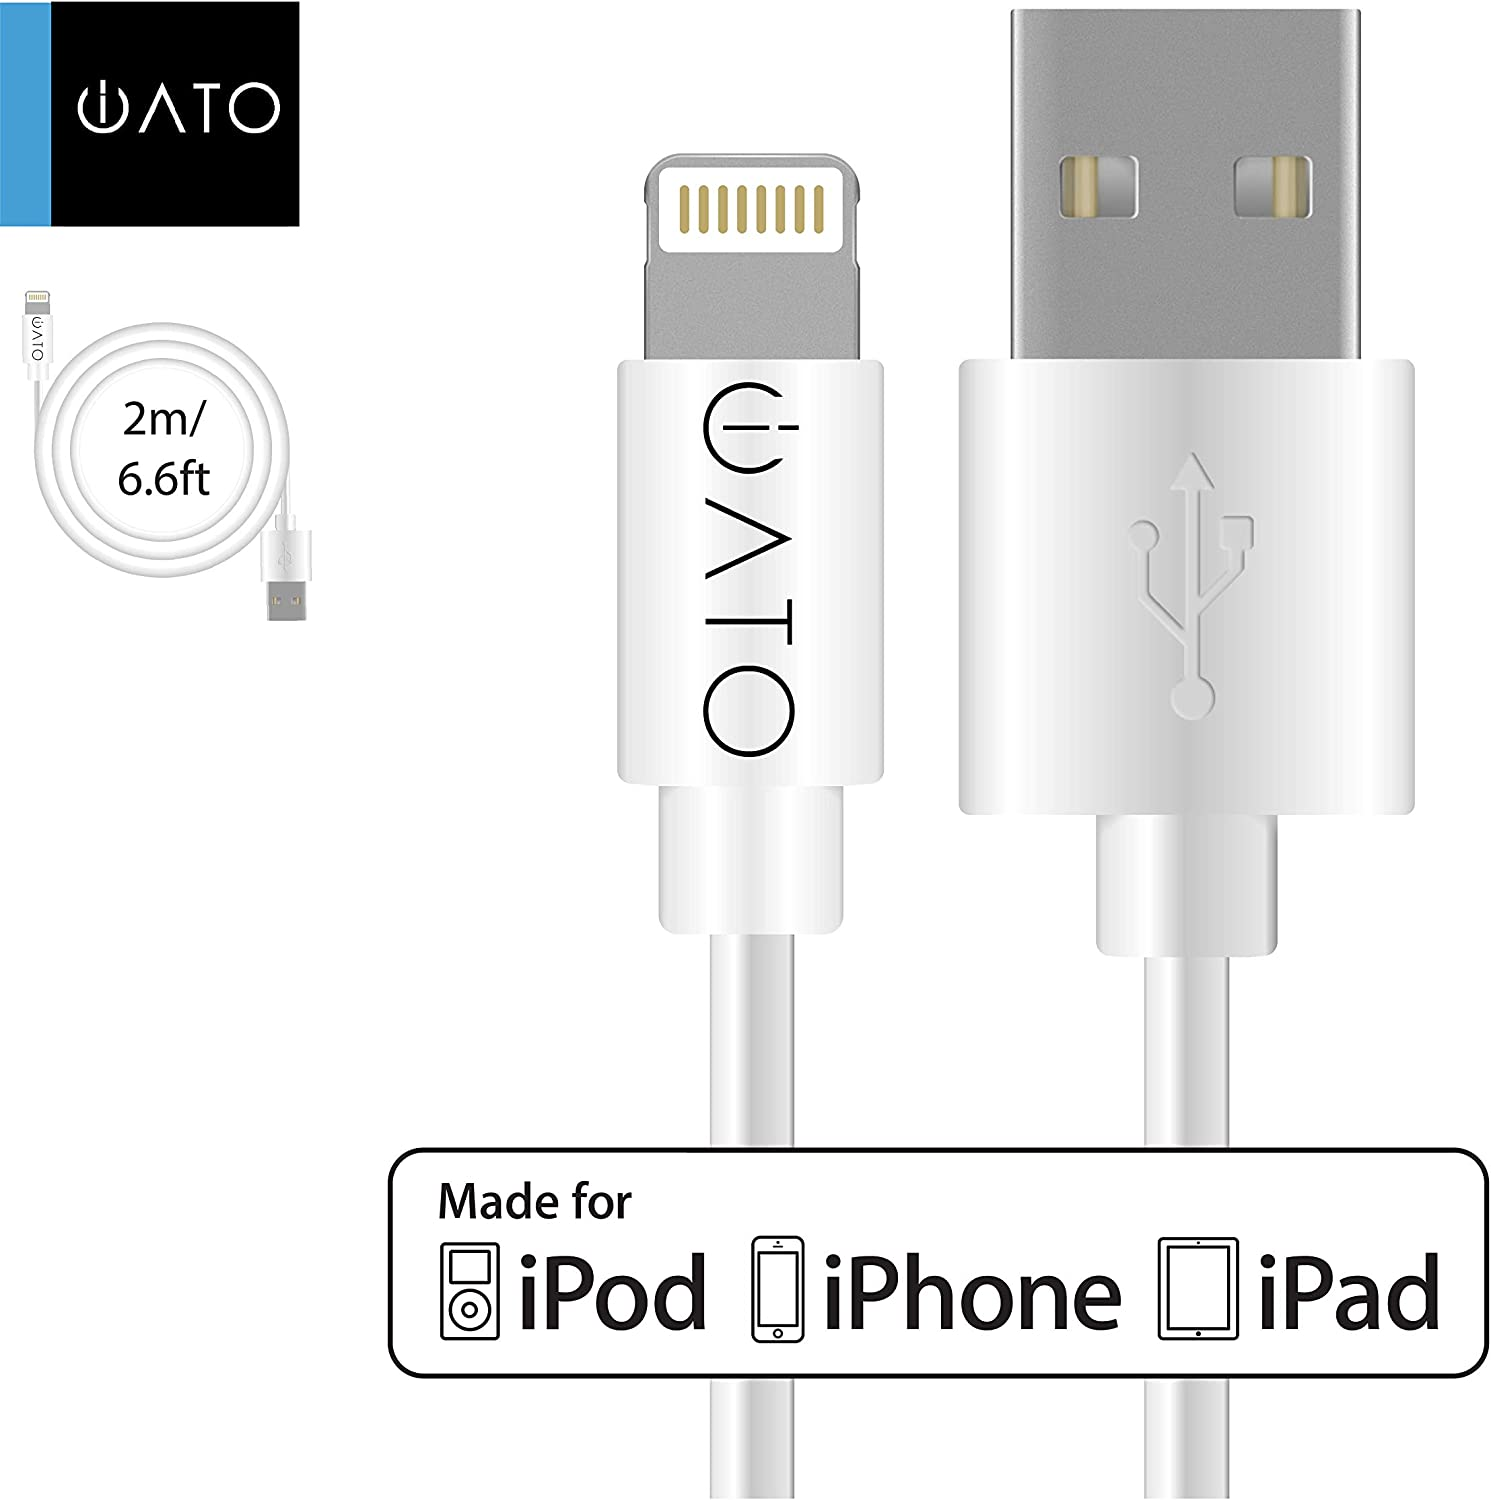 Apple MFi Certified Fast Strong Reliable Charging Lead for iPhone 11 Pro Max XR Xs Max X 10 8 7 6s 6 Plus SE 5s 5c 5 iPad iPod Cord White 24-Months Warranty iATO Lightning to USB Cable 2 Meter